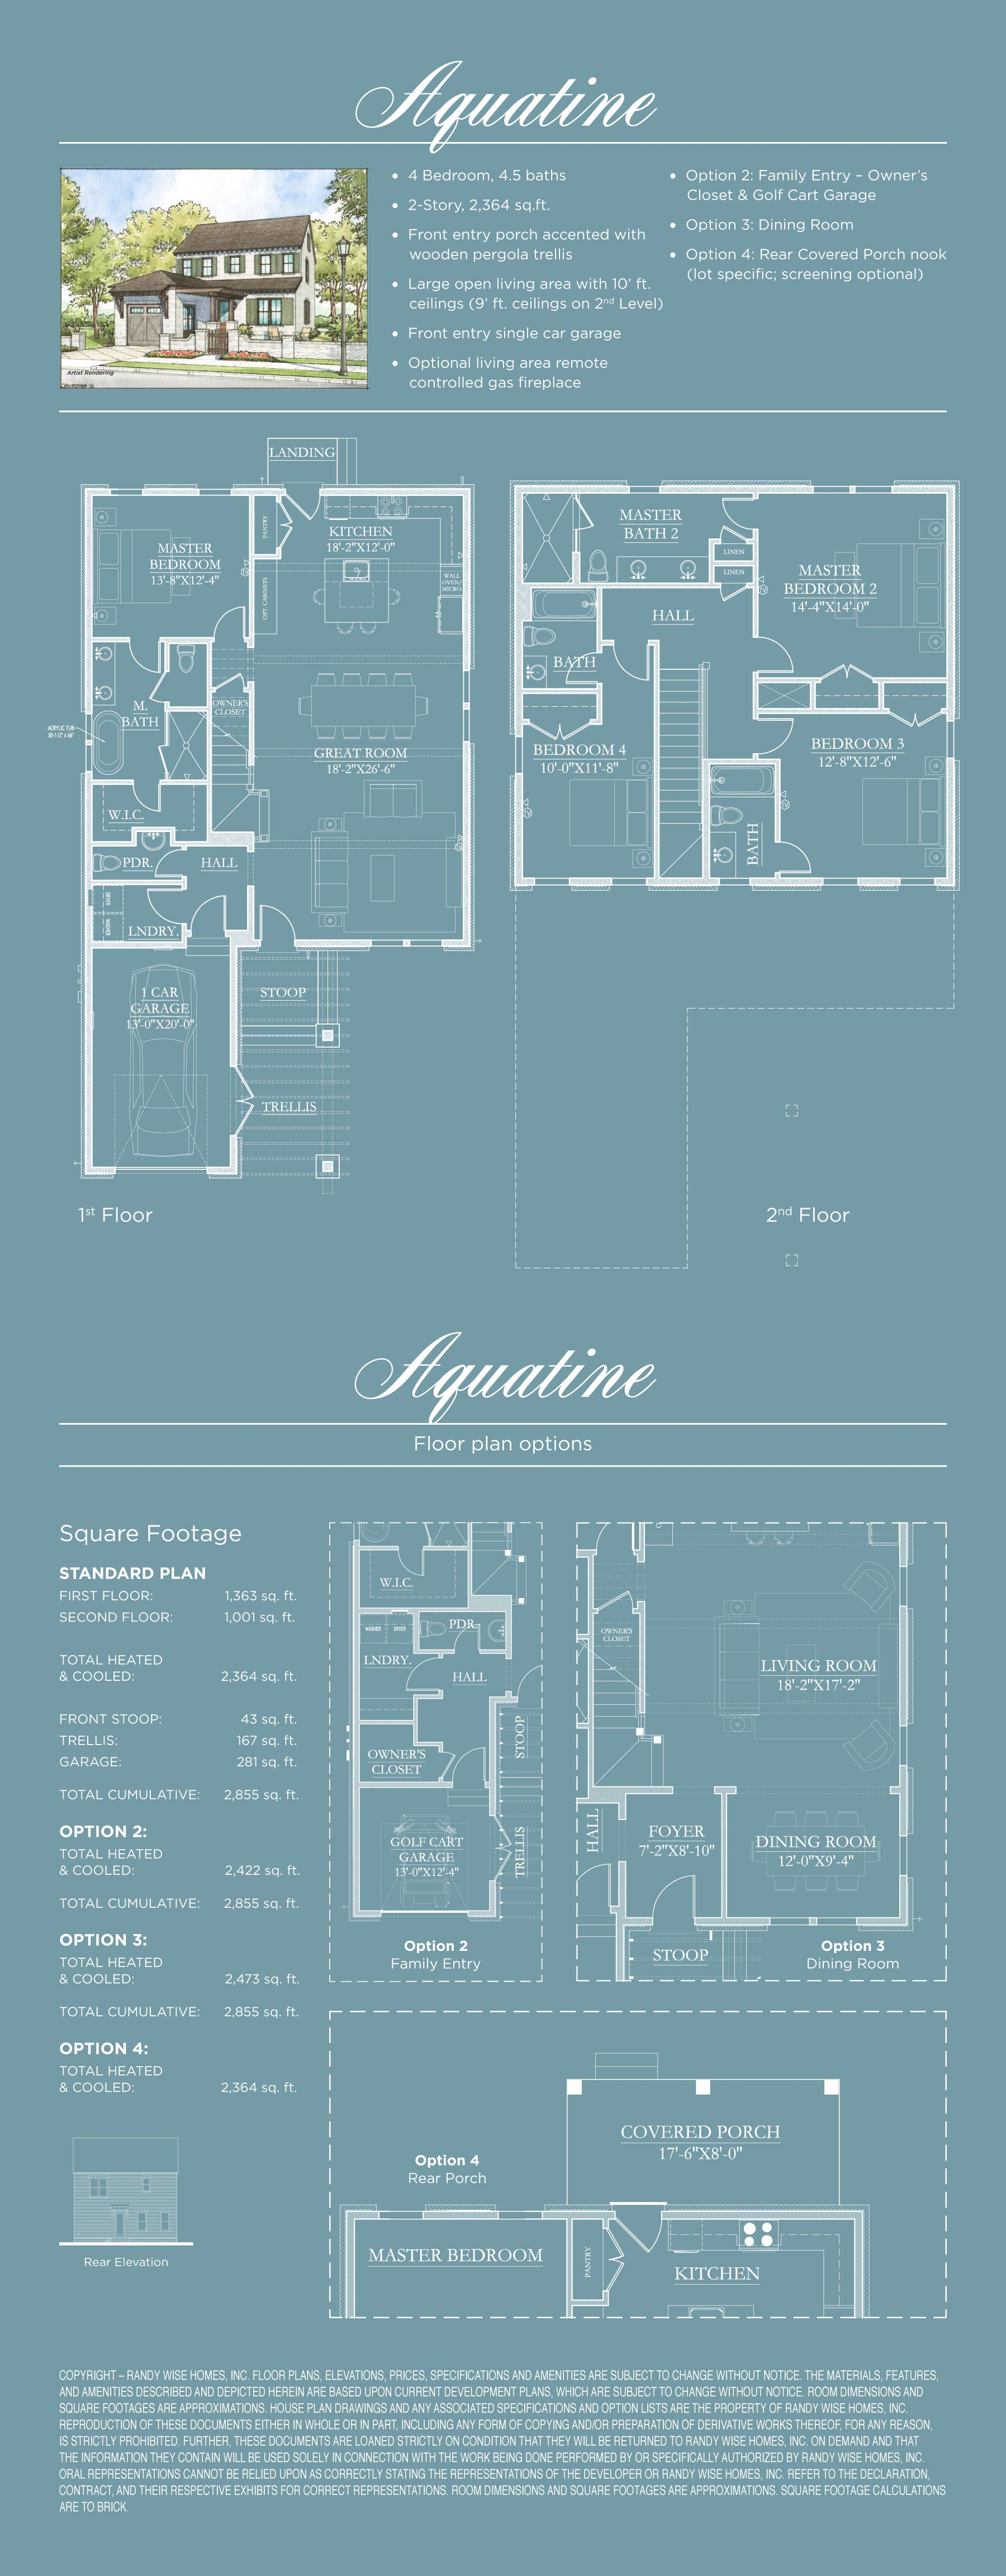 RidgeWalk FloorPlans - Aquatine